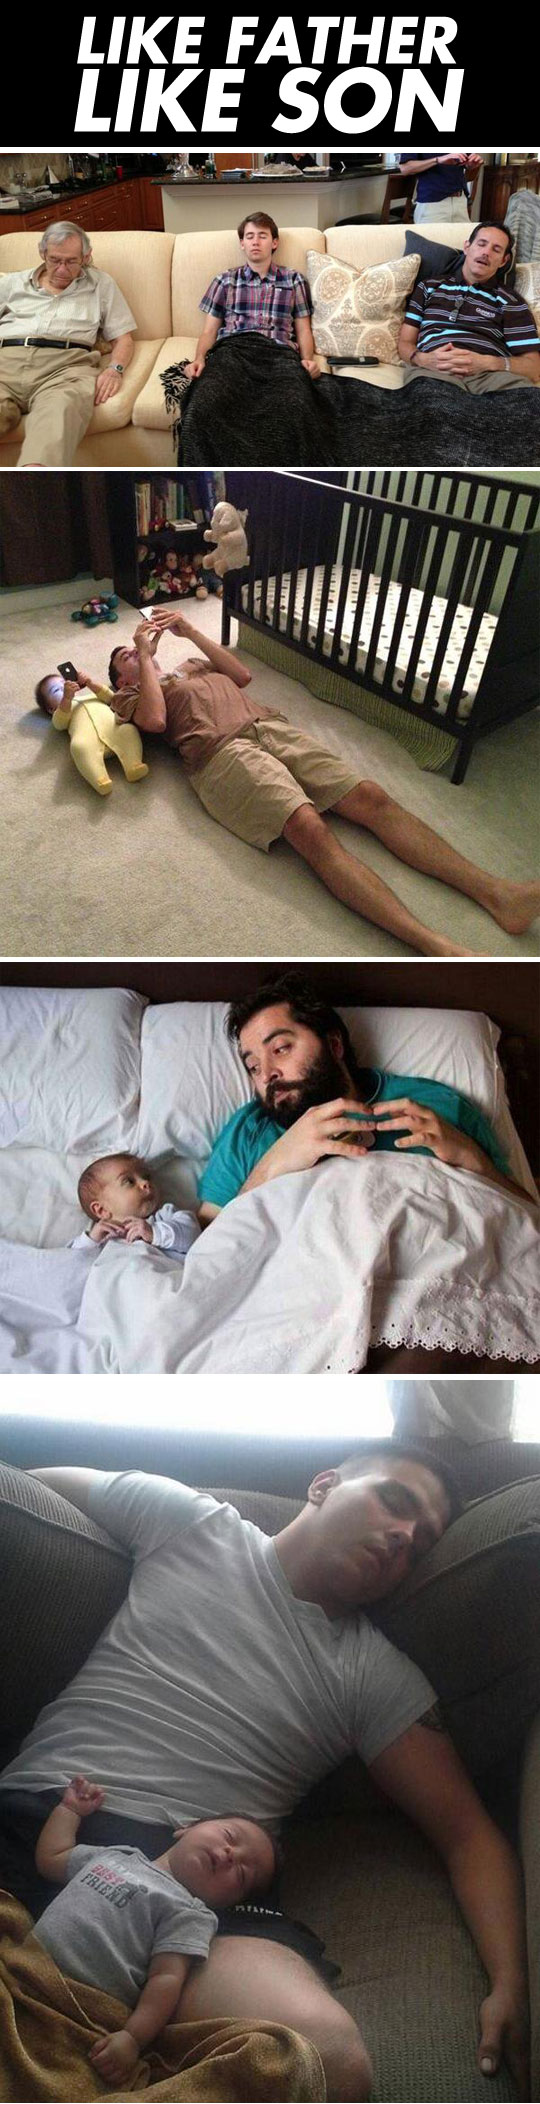 funny-father-like-son-couch-baby